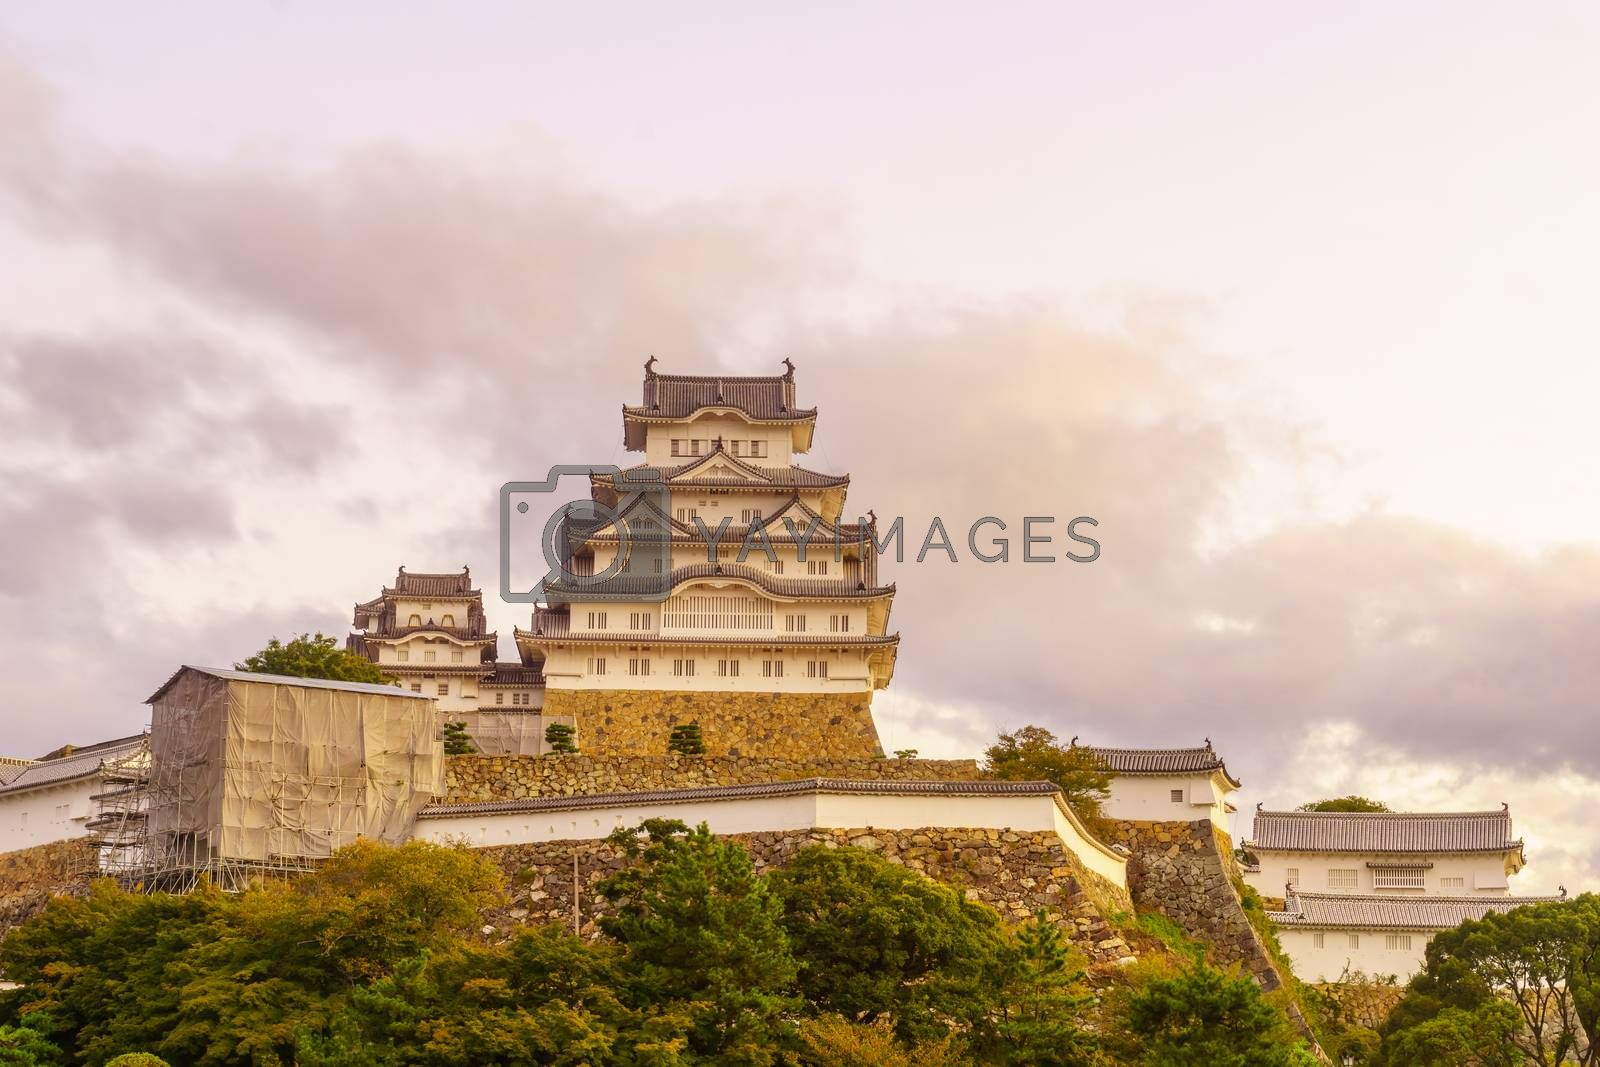 Sunrise view of the Himeji Castle, dated 1333, in the city of Himeji, Hyogo Prefecture, Japan